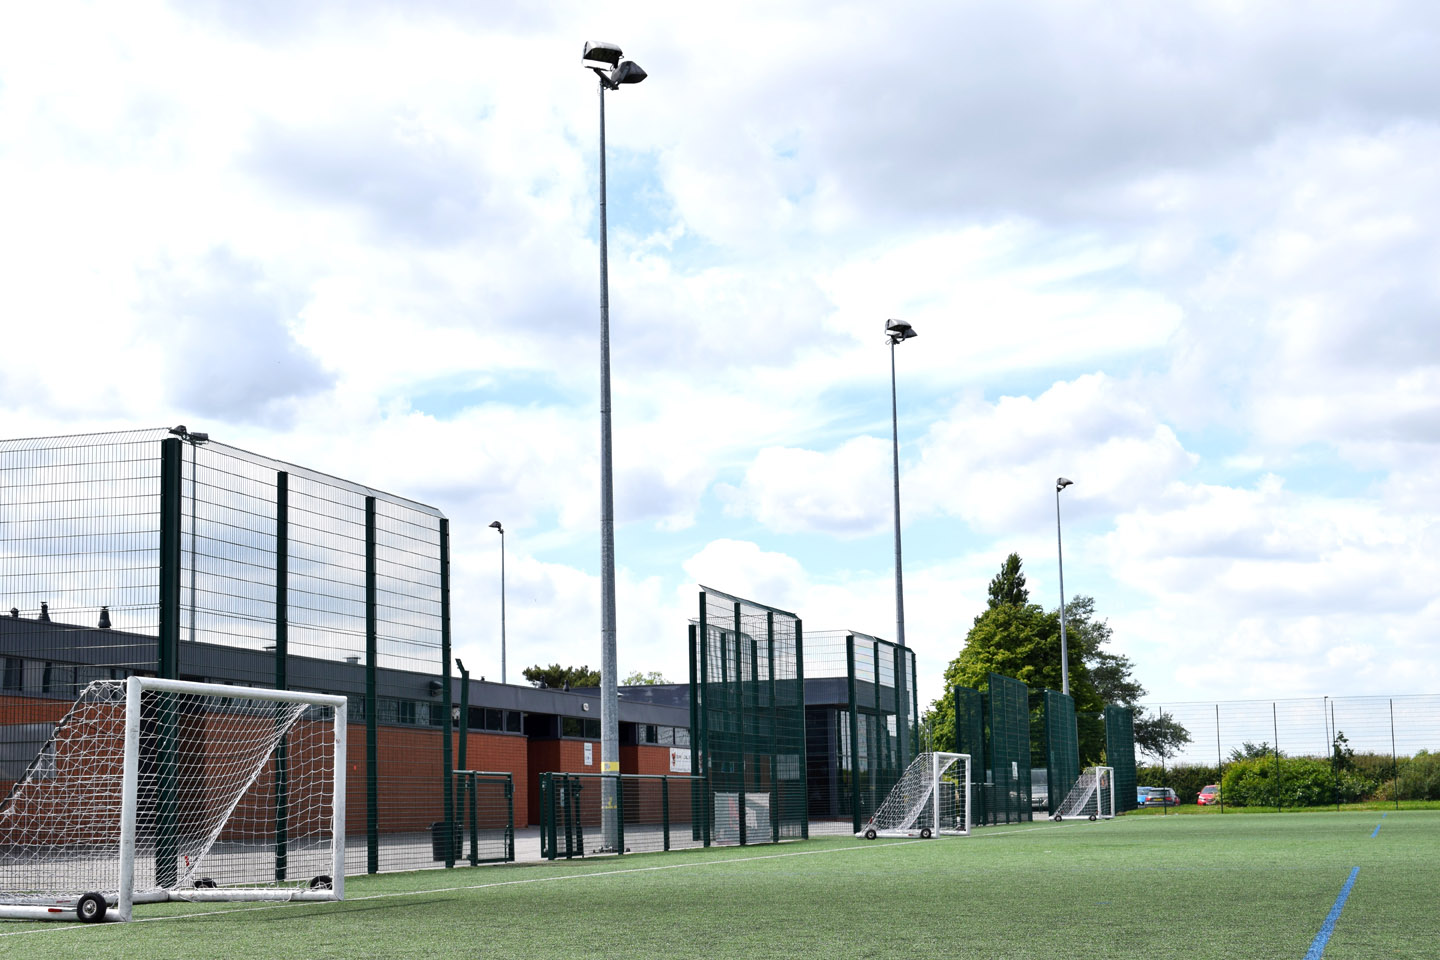 3G Pitch and Facility